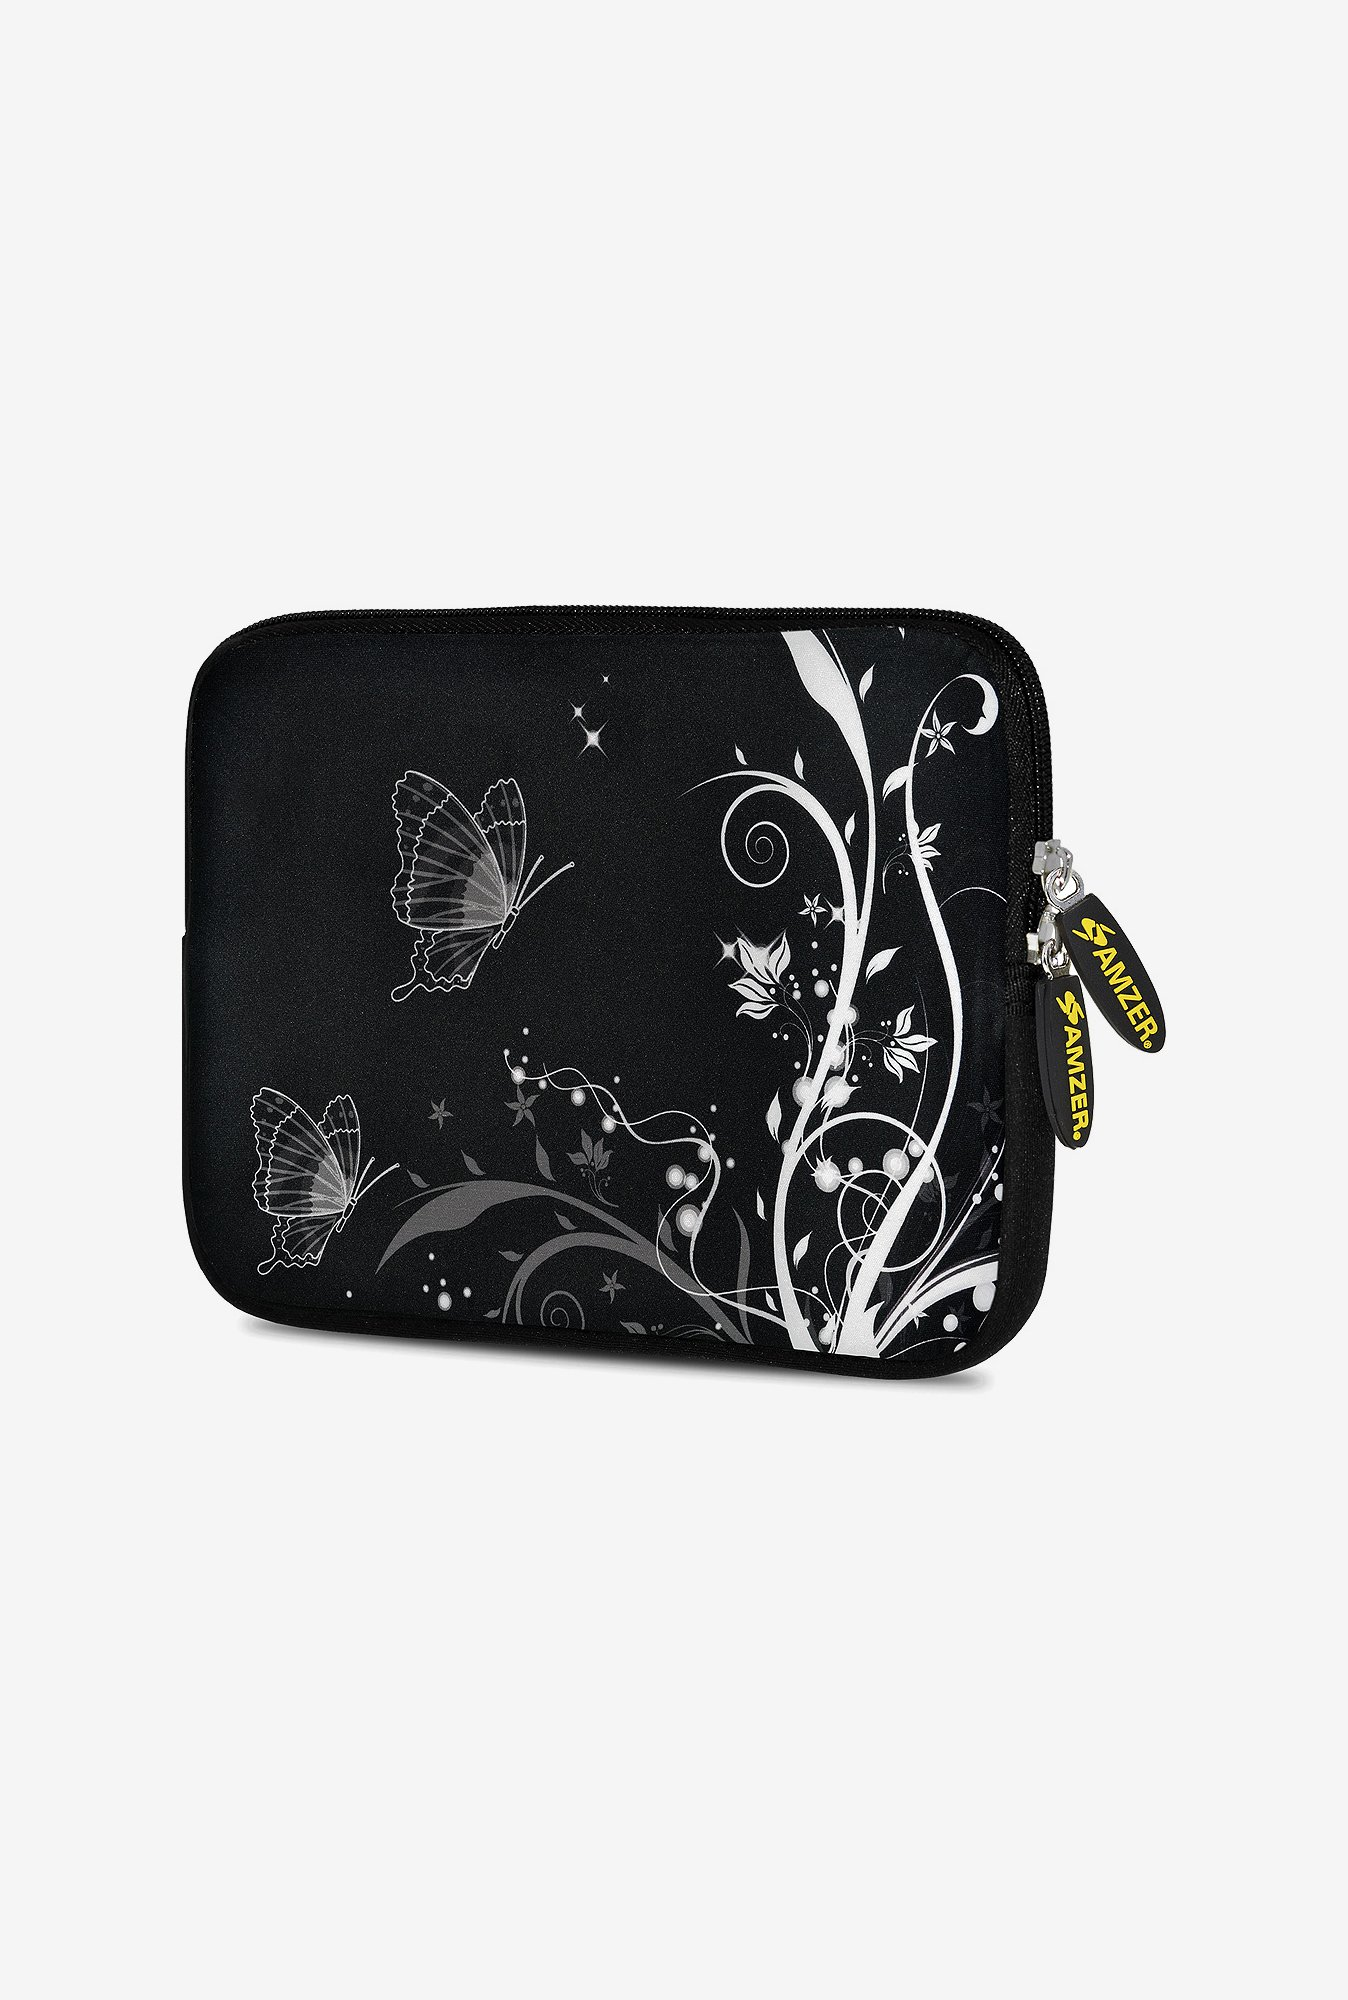 Amzer 10.5 Inch Neoprene Sleeve - Black Butterfly